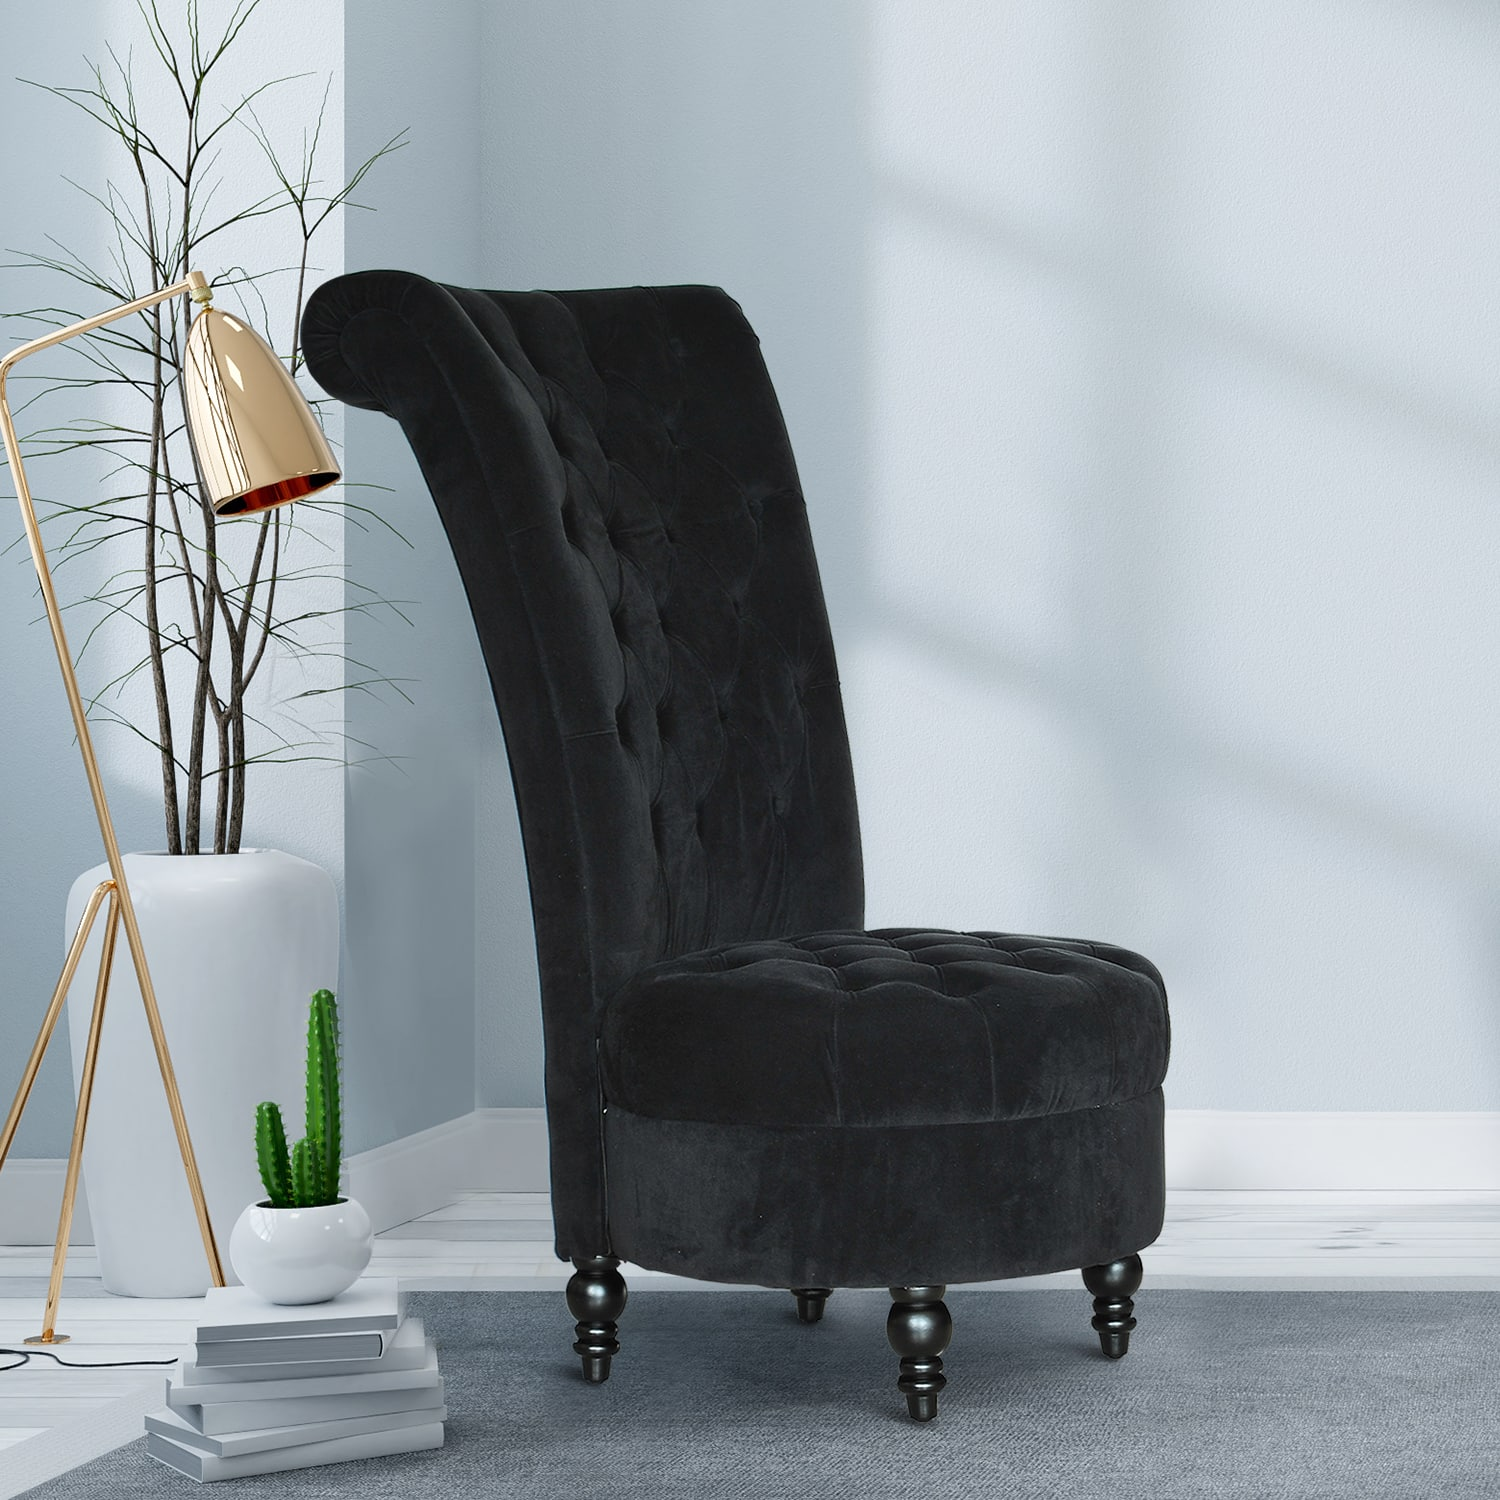 """HomCom 44"""" Tufted High Back Accent Chair- $159.99 + Free Shipping"""